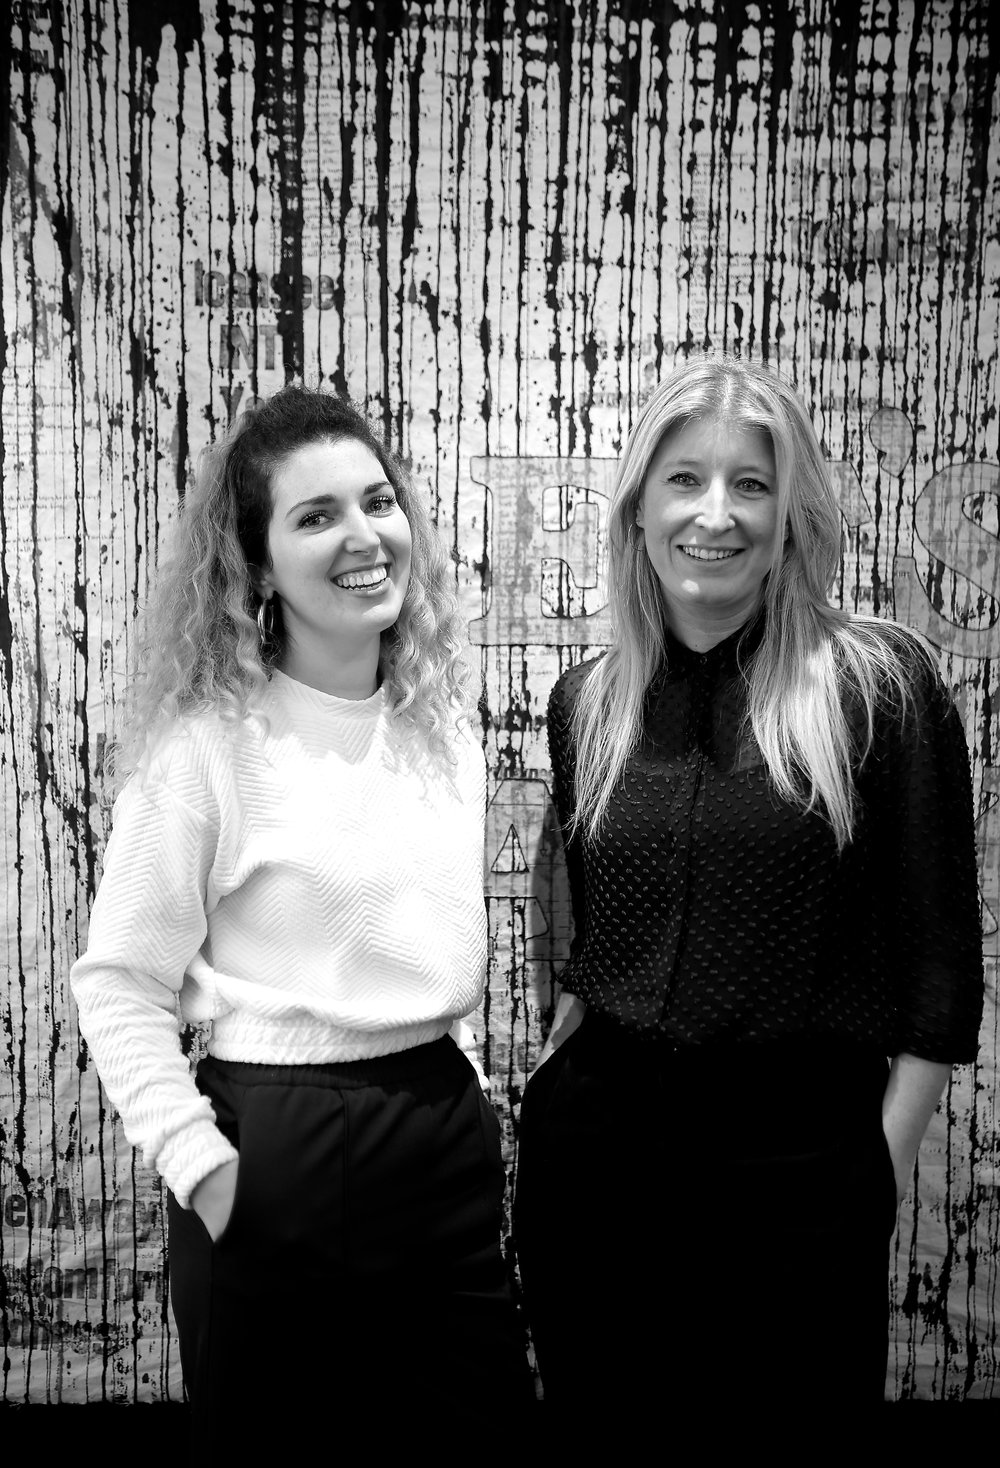 Emma Smithwick and Phoebe Bourke - Photography by Nic Roques